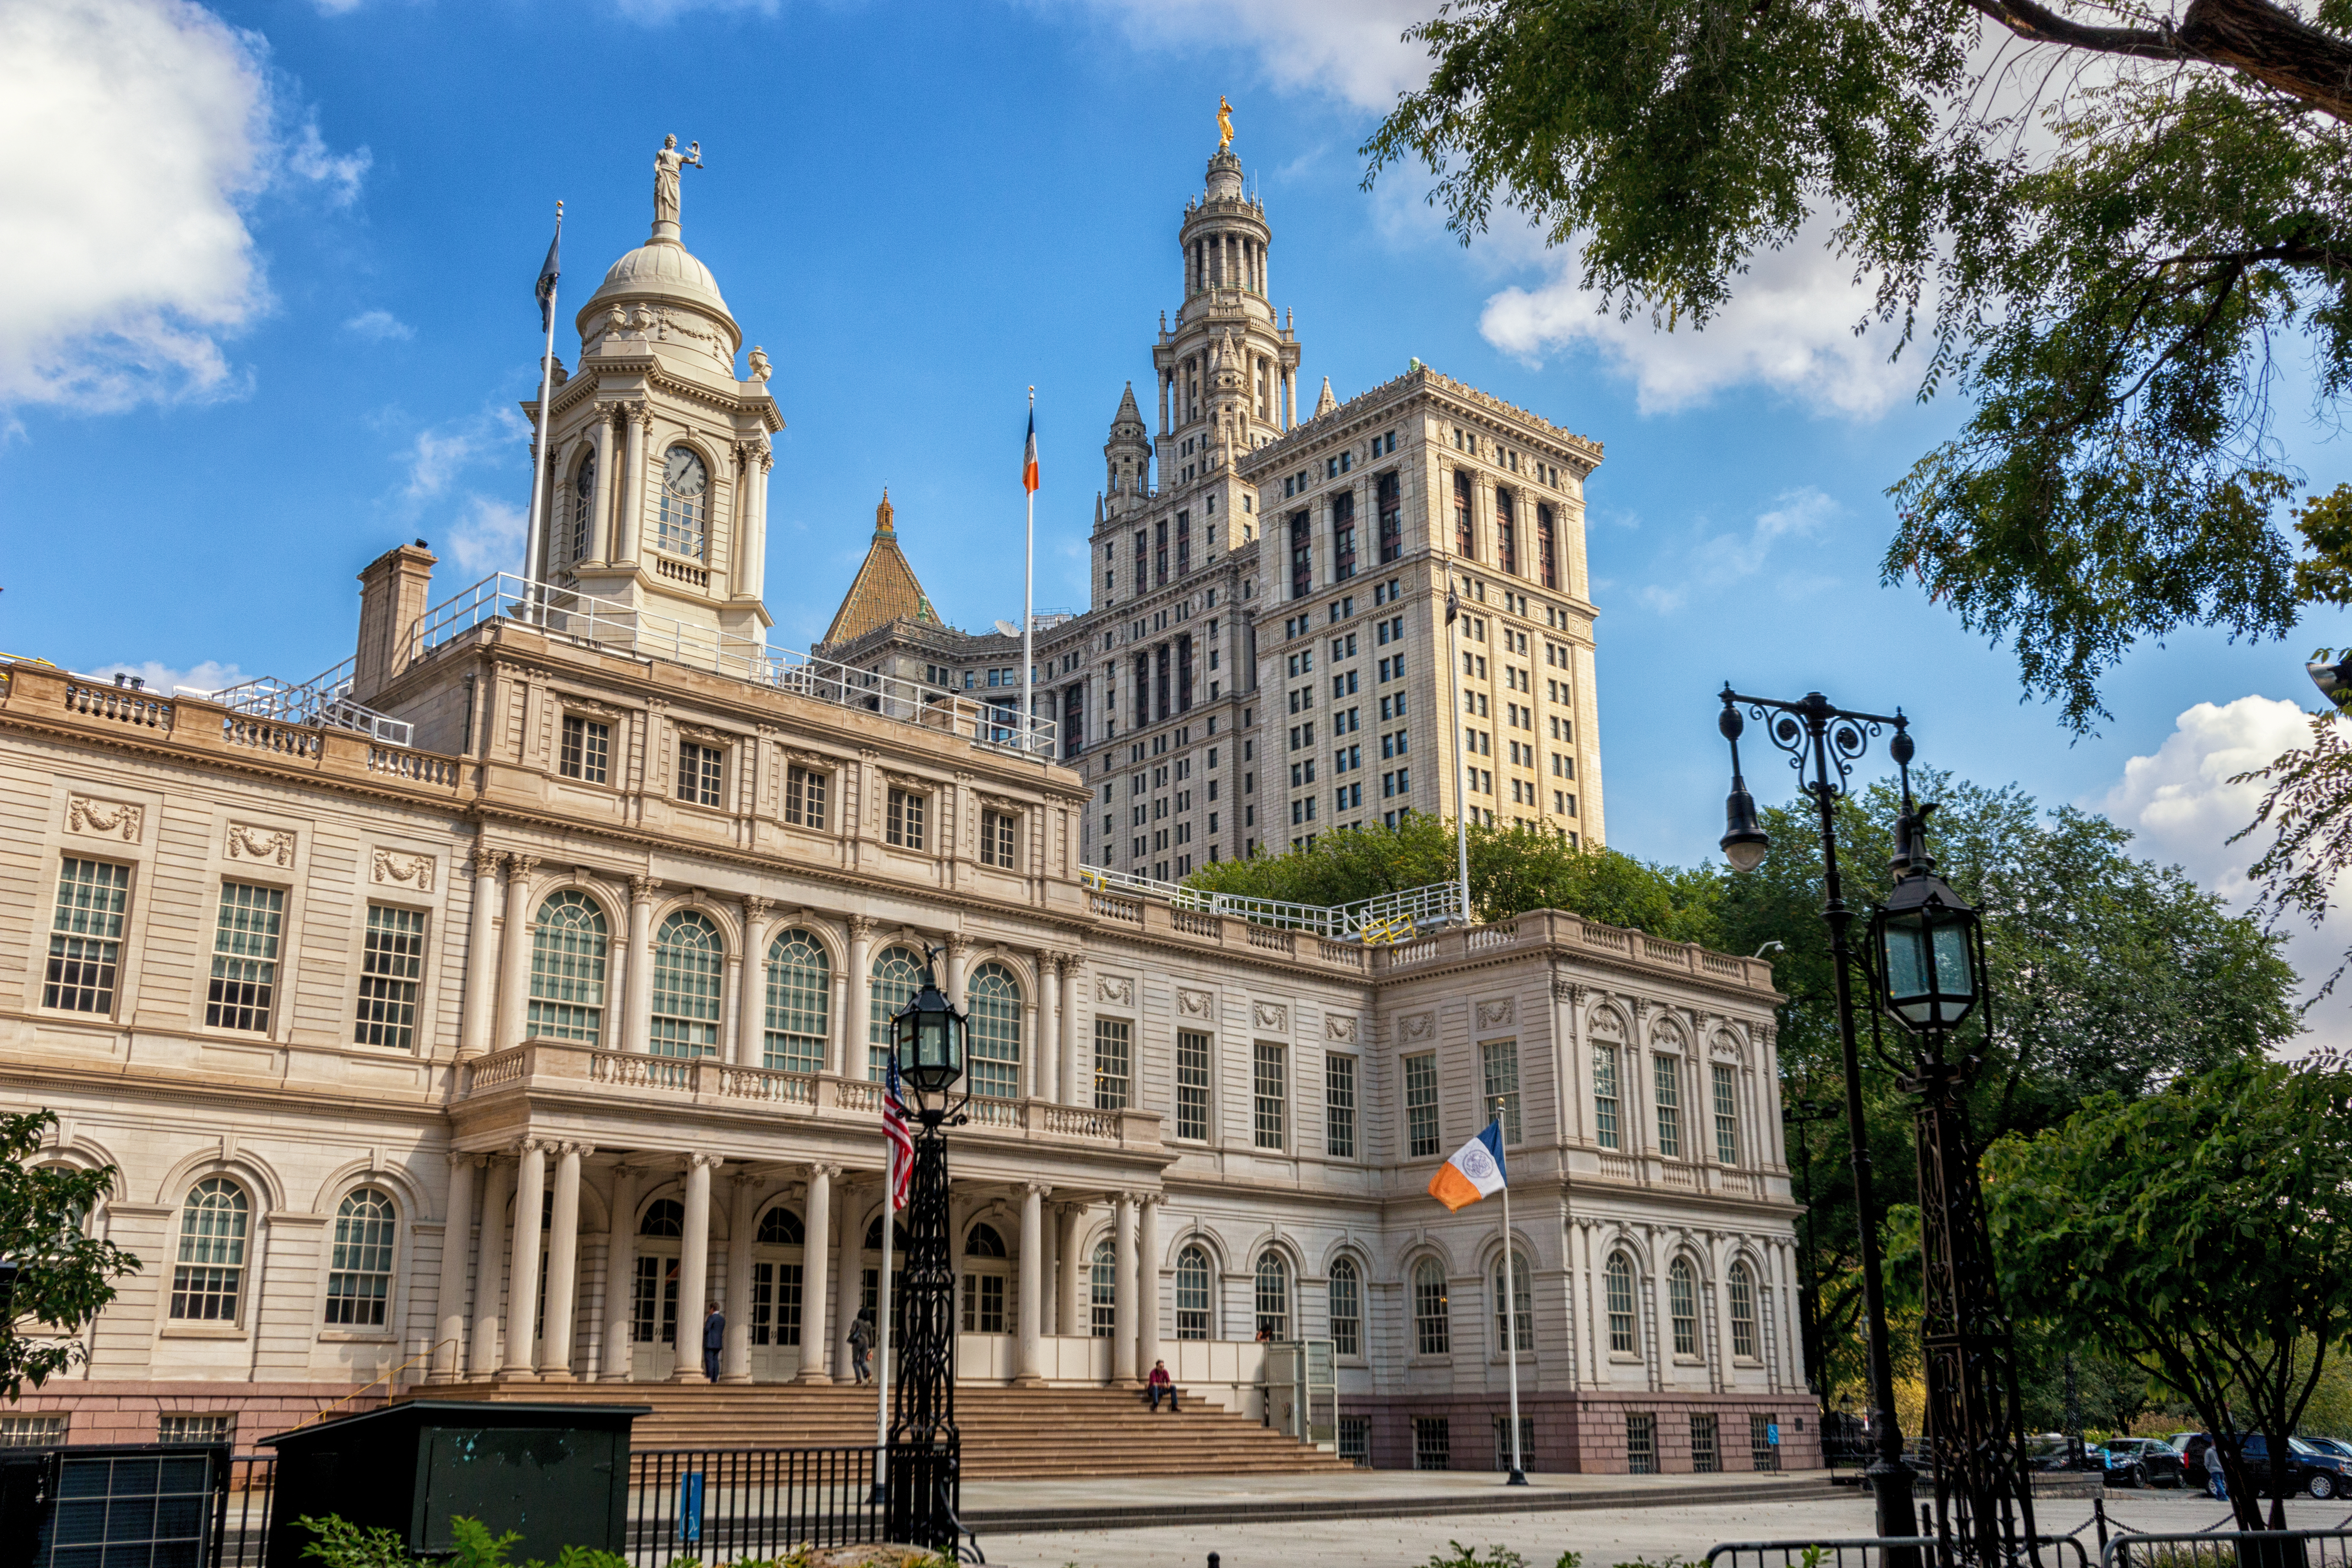 As The Oldest City Hall In United States That Still Houses Its Original Government Functions New York Was Constructed From 1803 To 1812